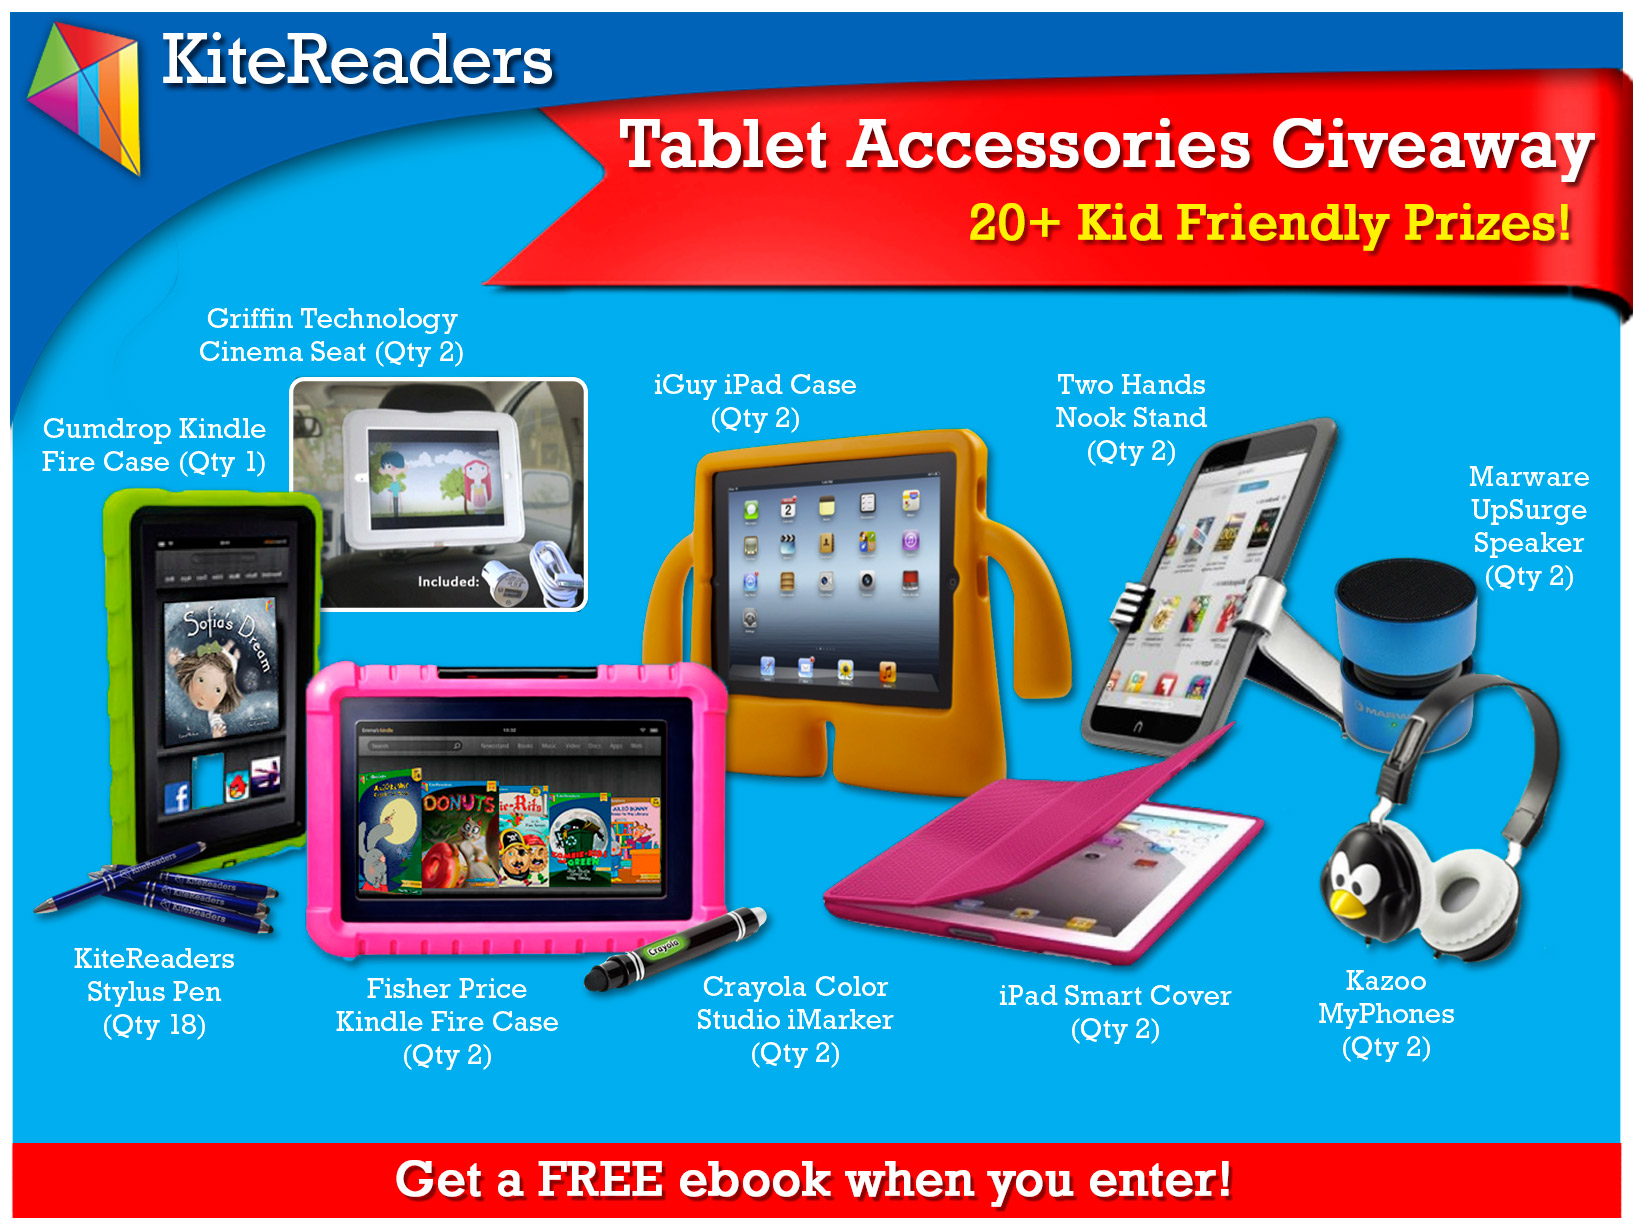 Kid-Friendly Tablet Accessories Giveaway And FREE eBook When You Enter!